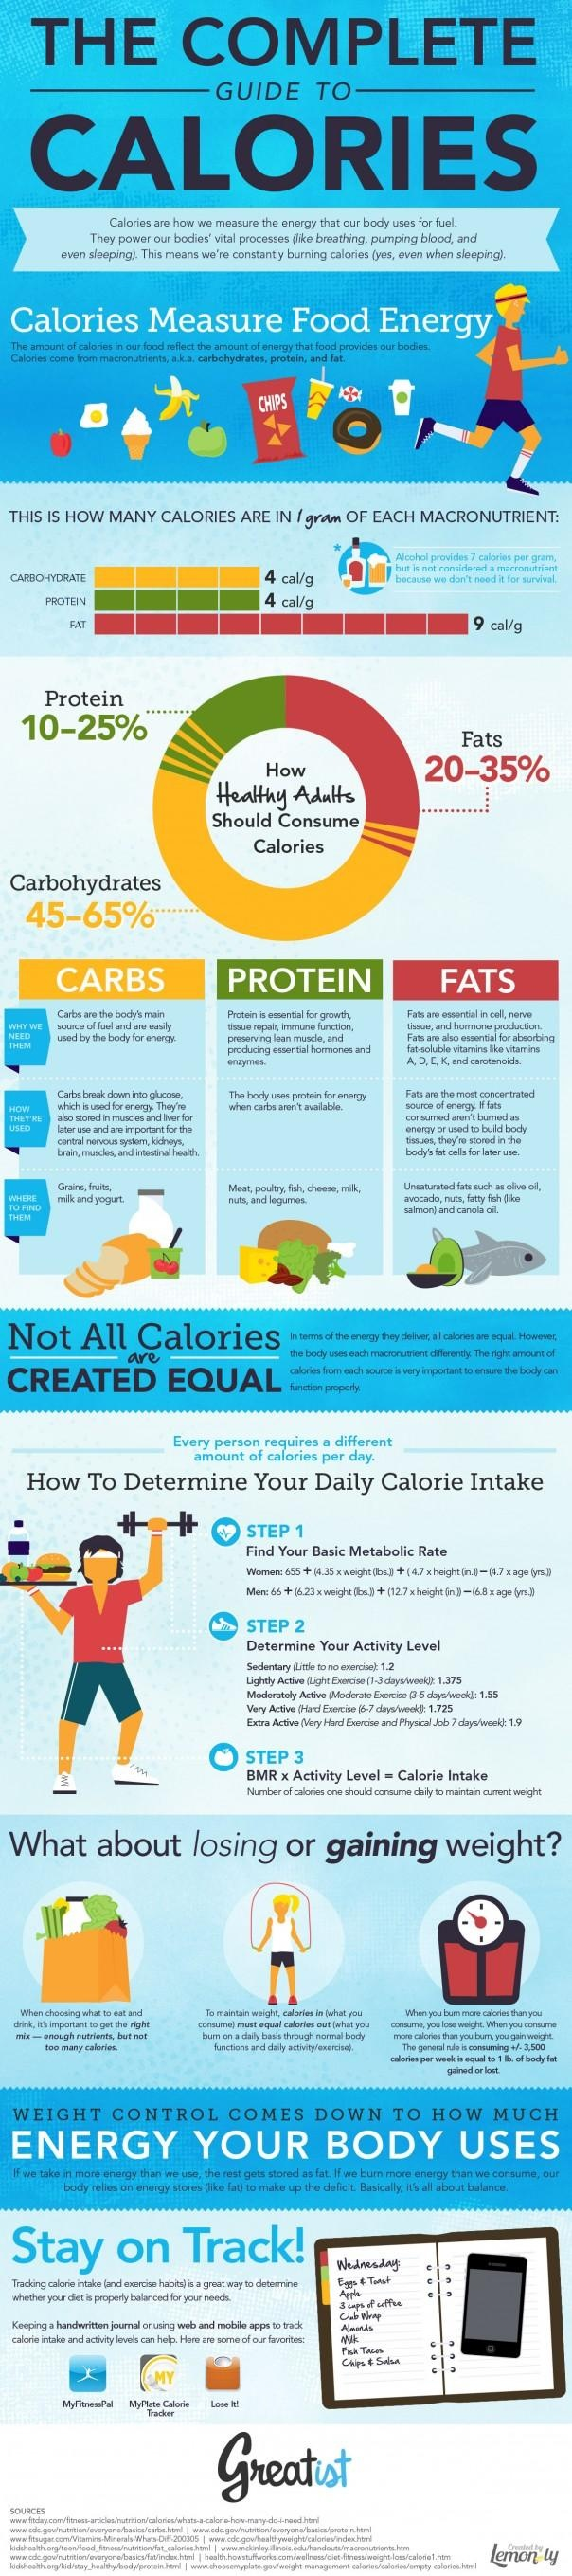 Complete Guide to Calories